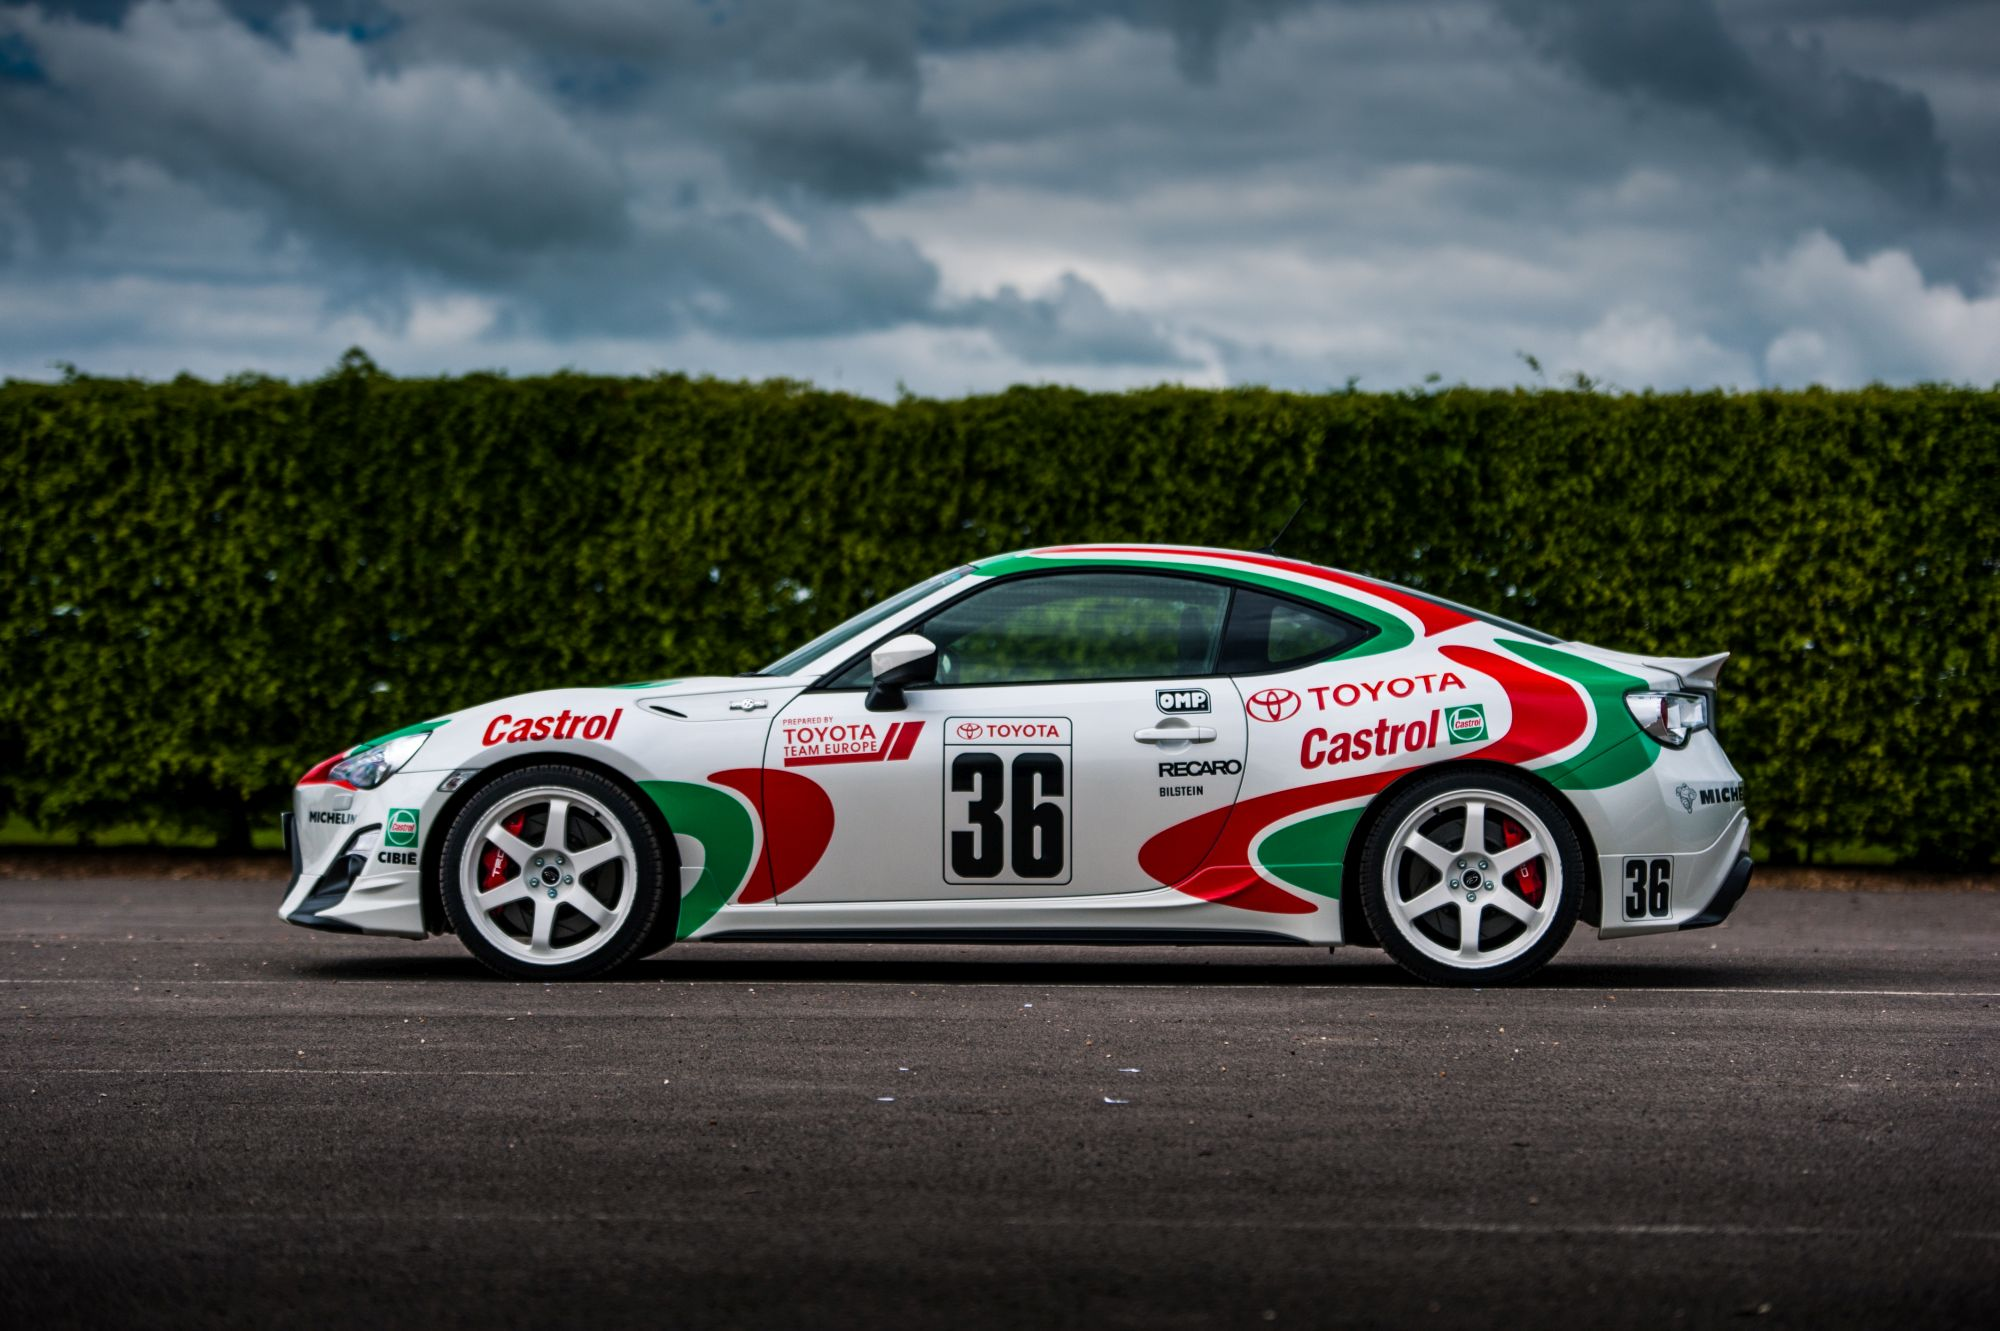 Toyota 86 Livery >> Castrol Racing Waterslide Decals | Custom Hotwheels & Model Cars